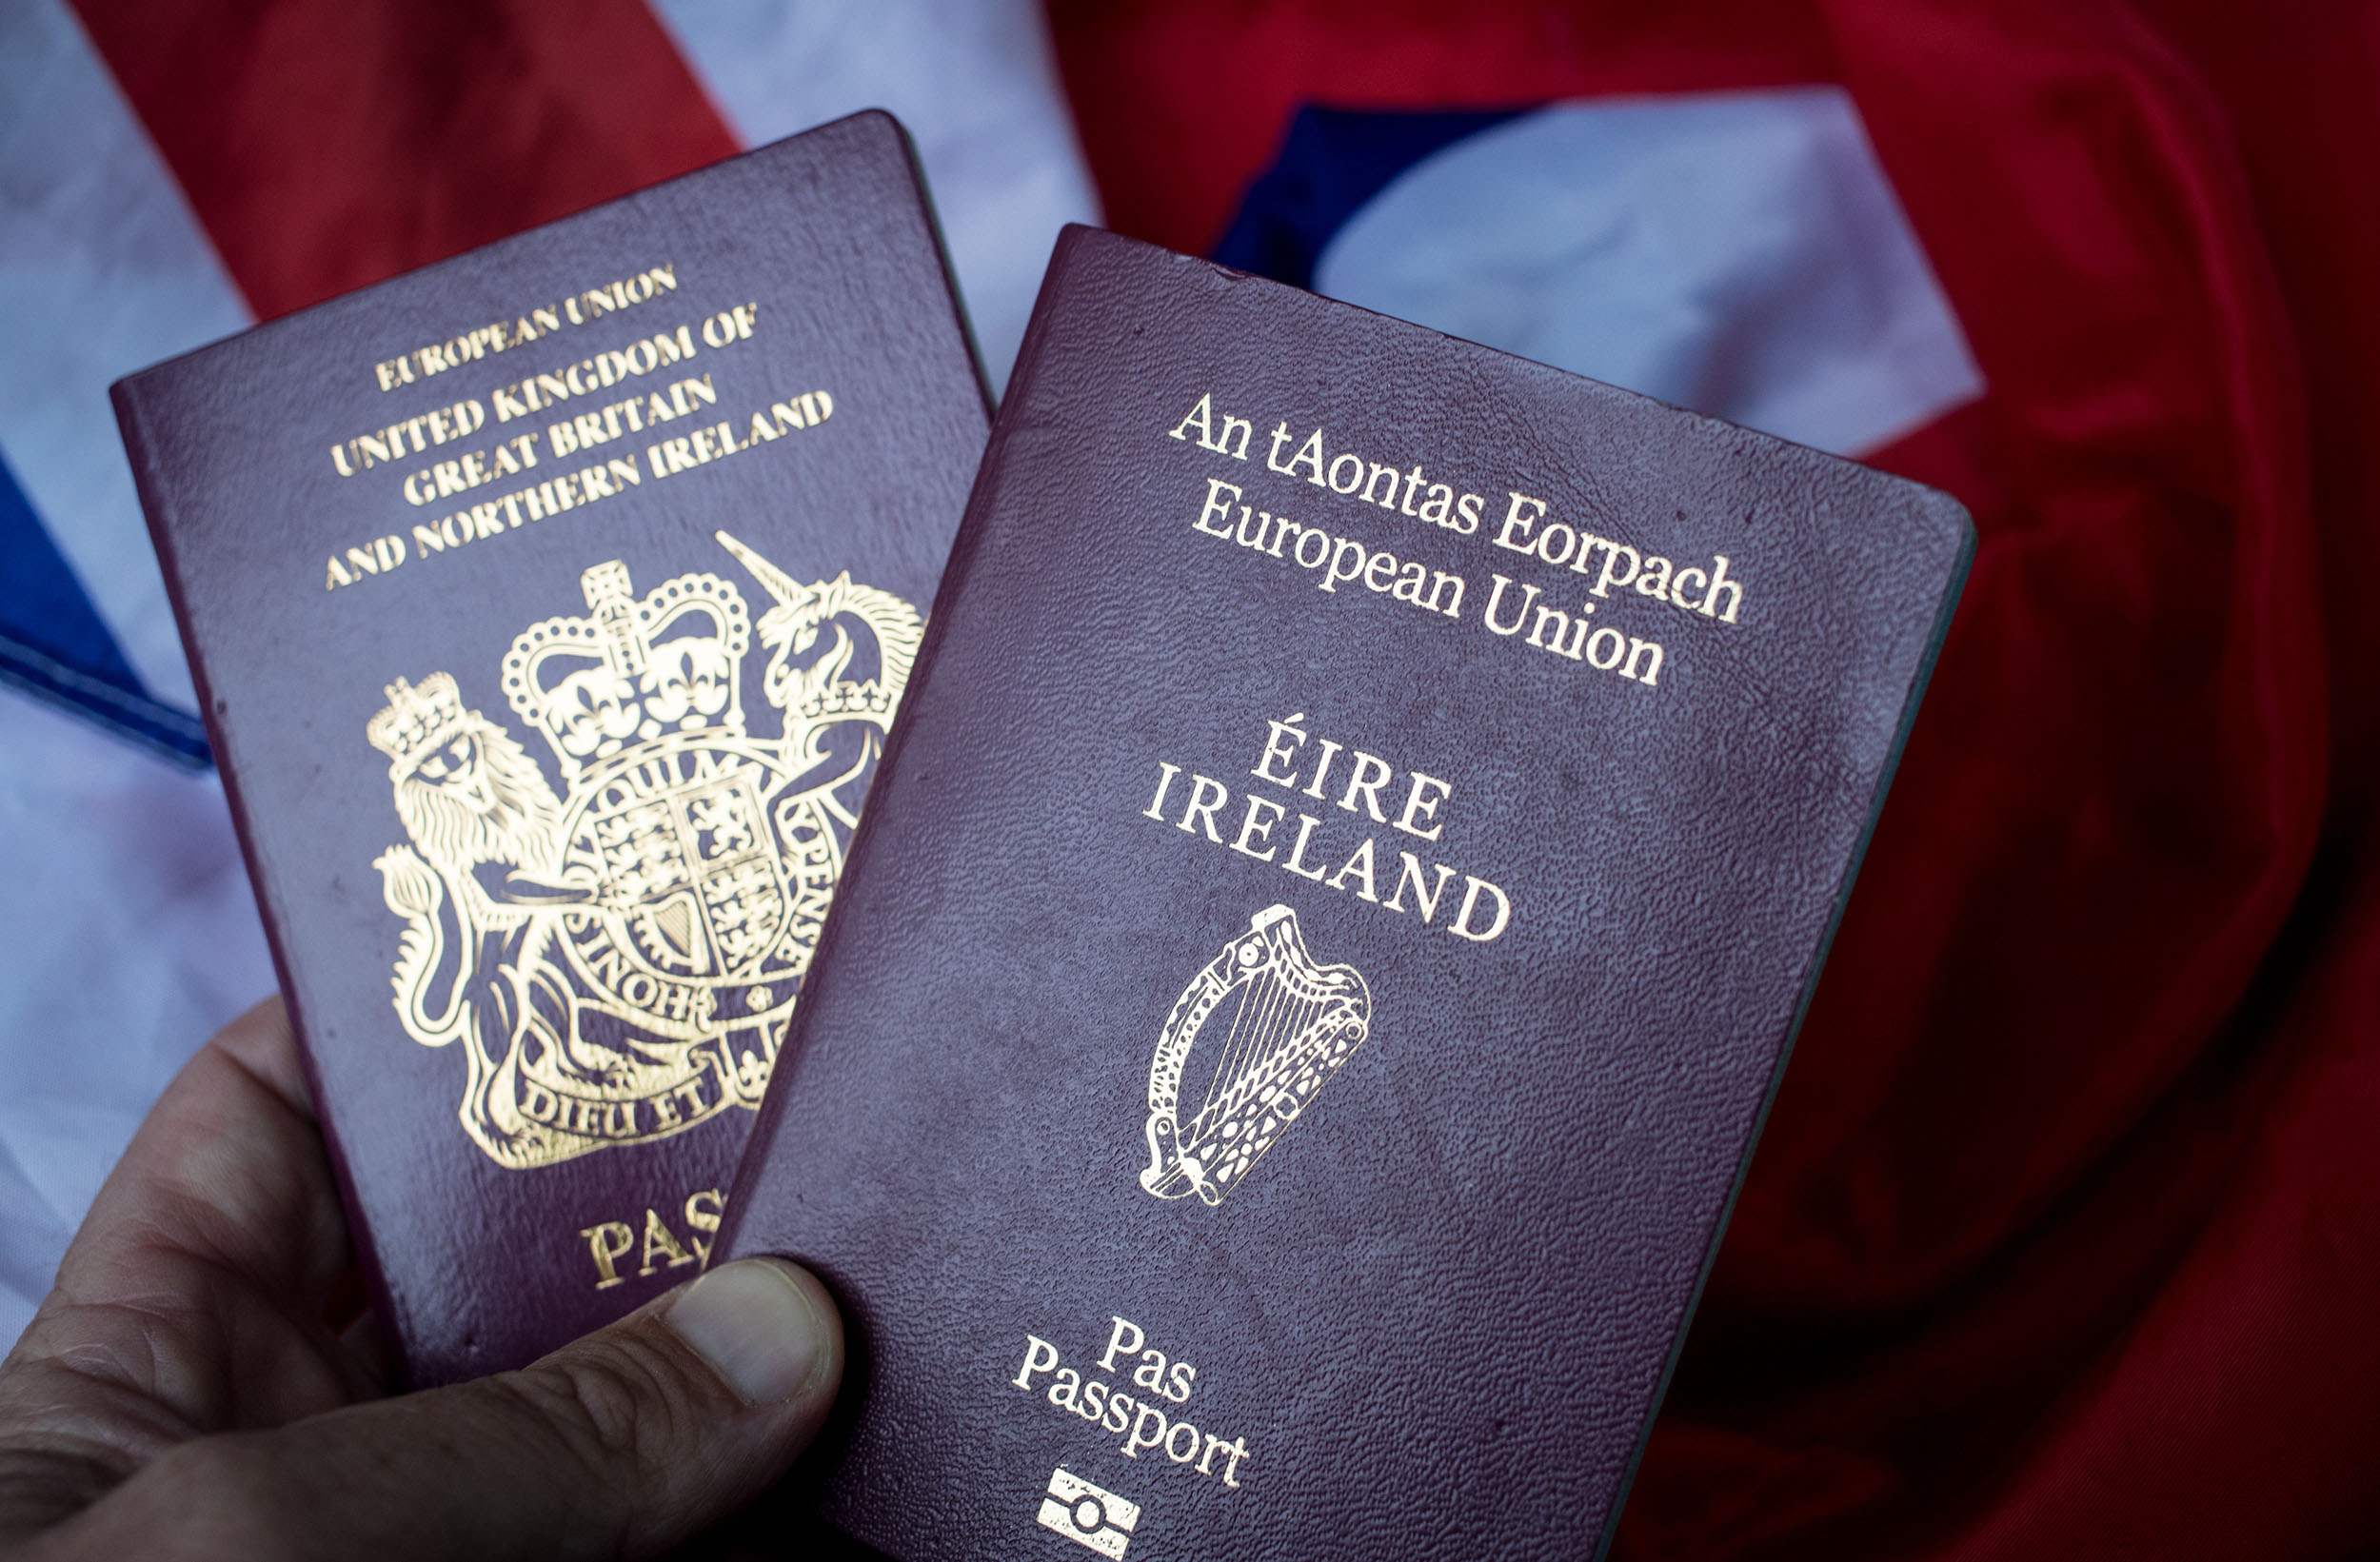 https://lisaslaw.co.uk/wp-content/uploads/2020/02/irish-passport.jpg